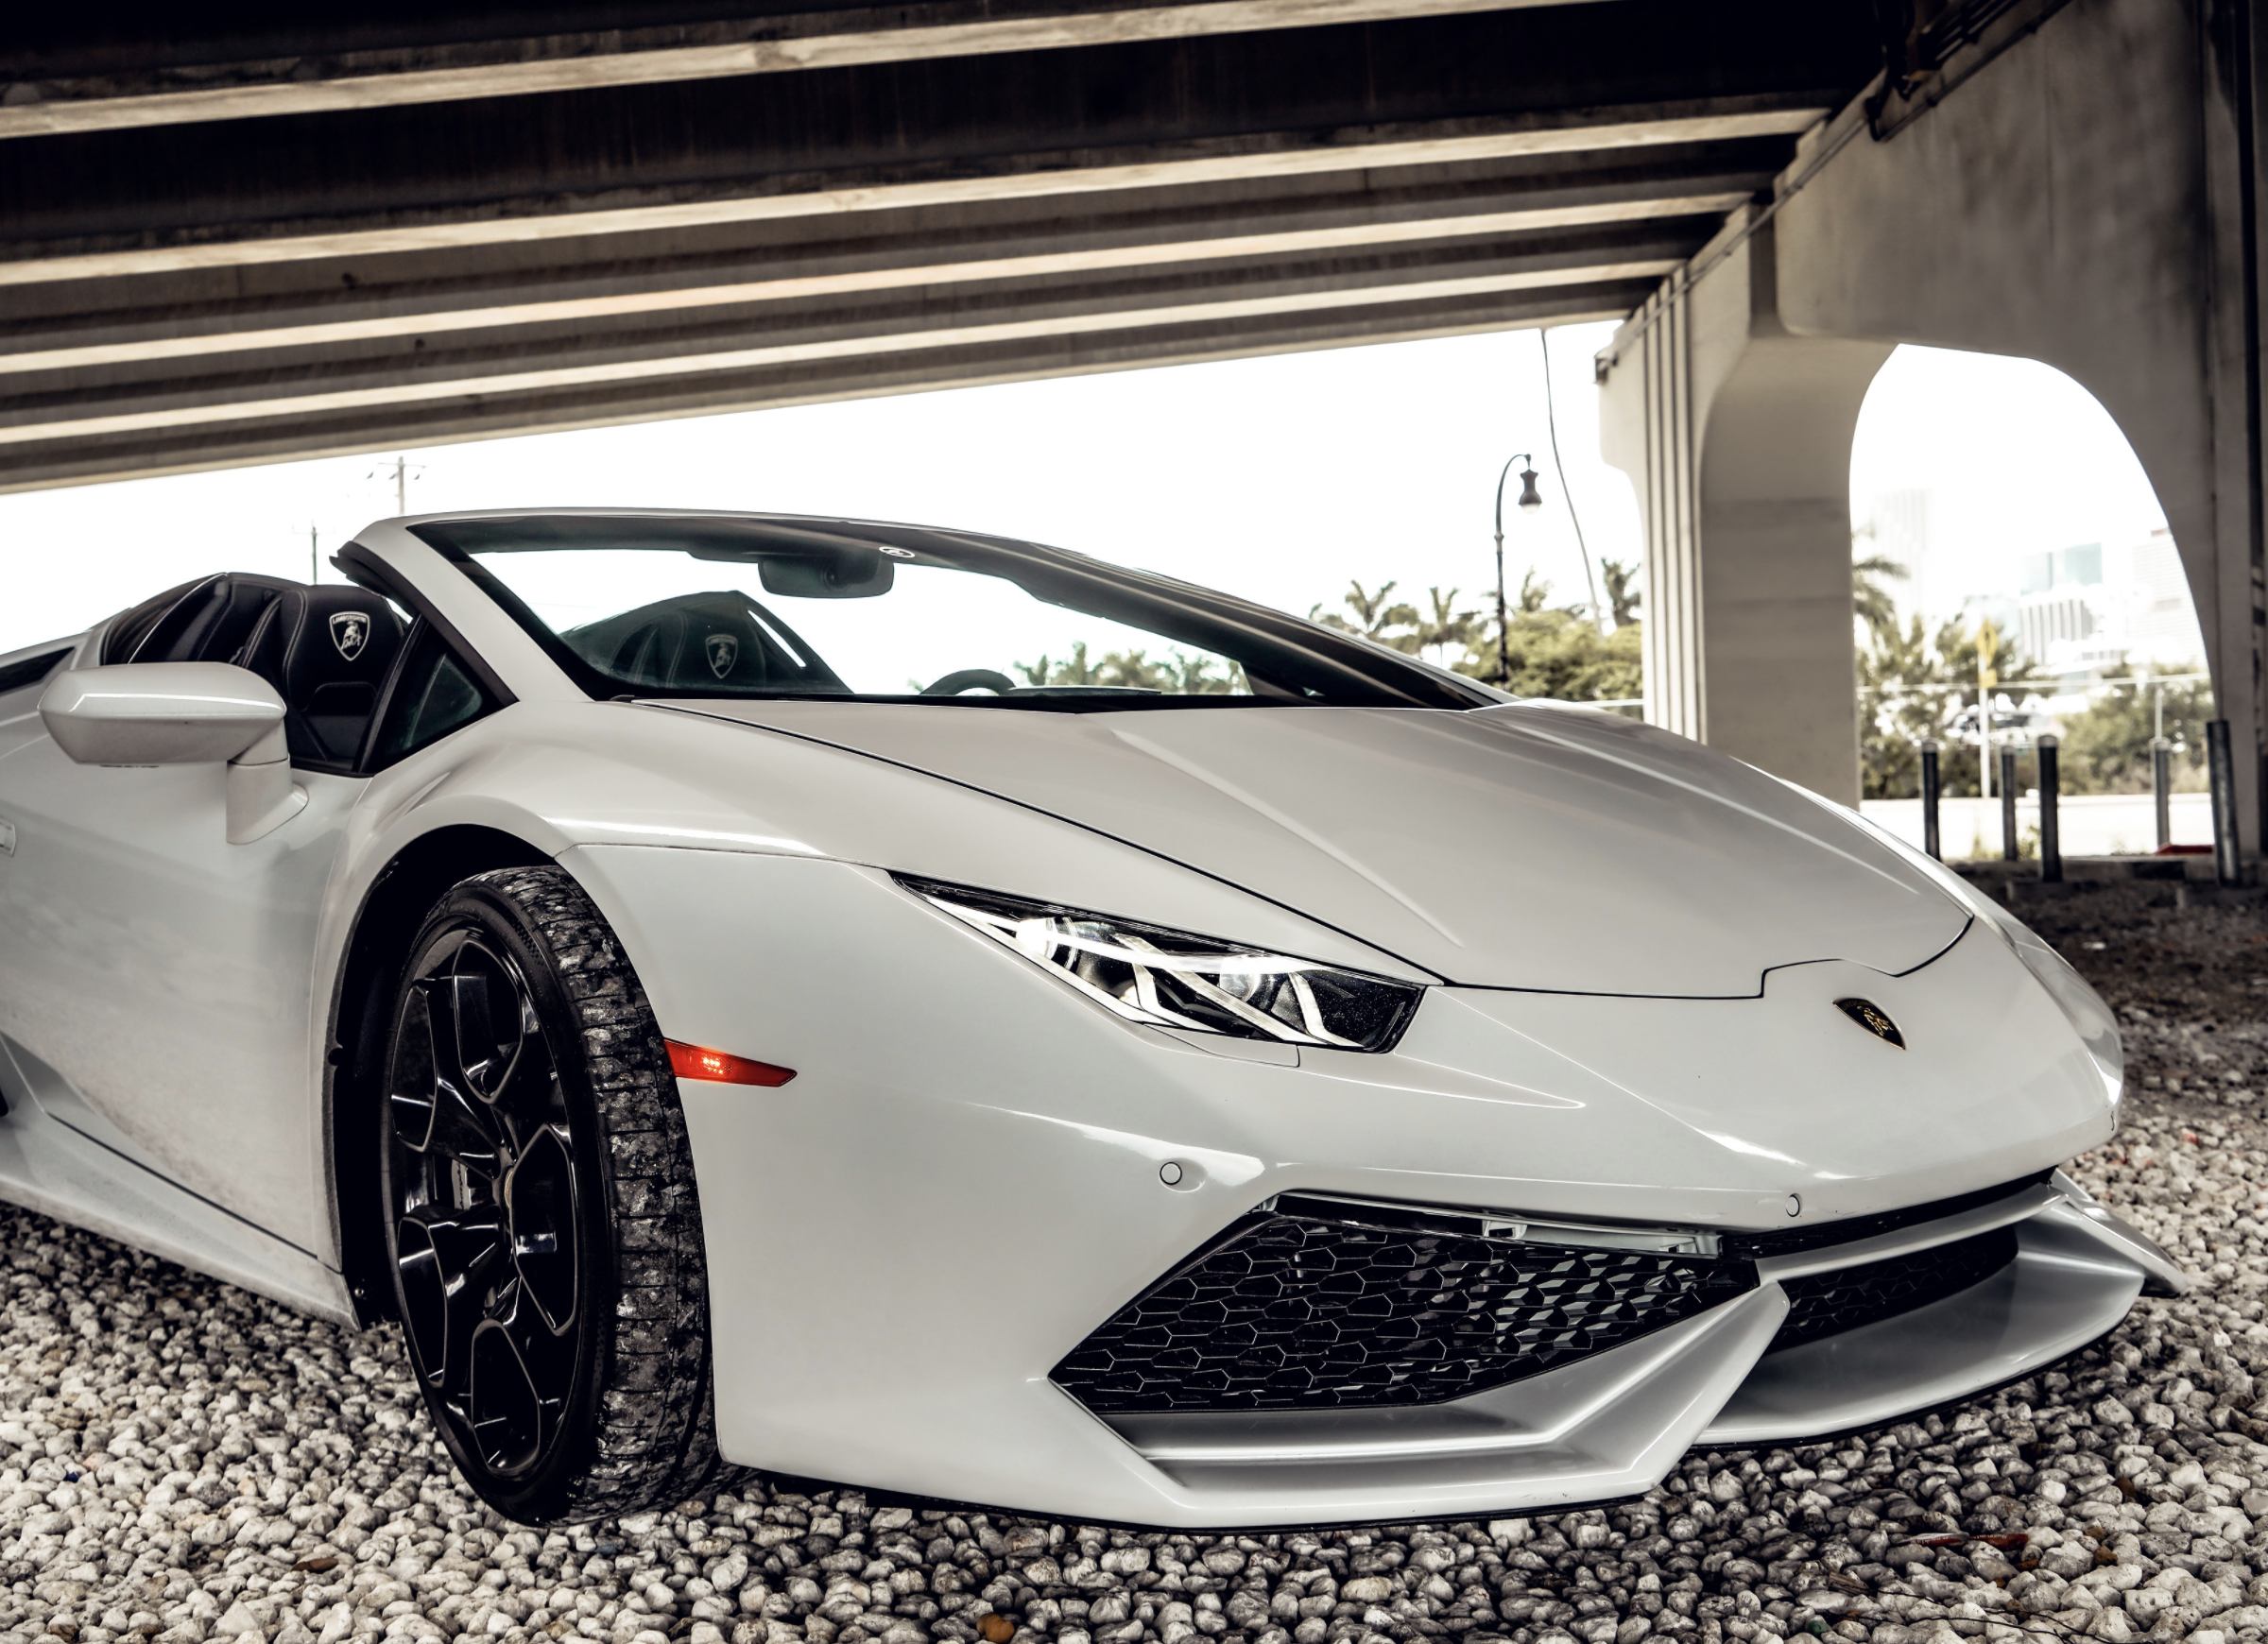 Image #3 of our  LAMBORGHINI HURACAN WHITE    In Miami Fort Lauderdale Palm Beach South Florida